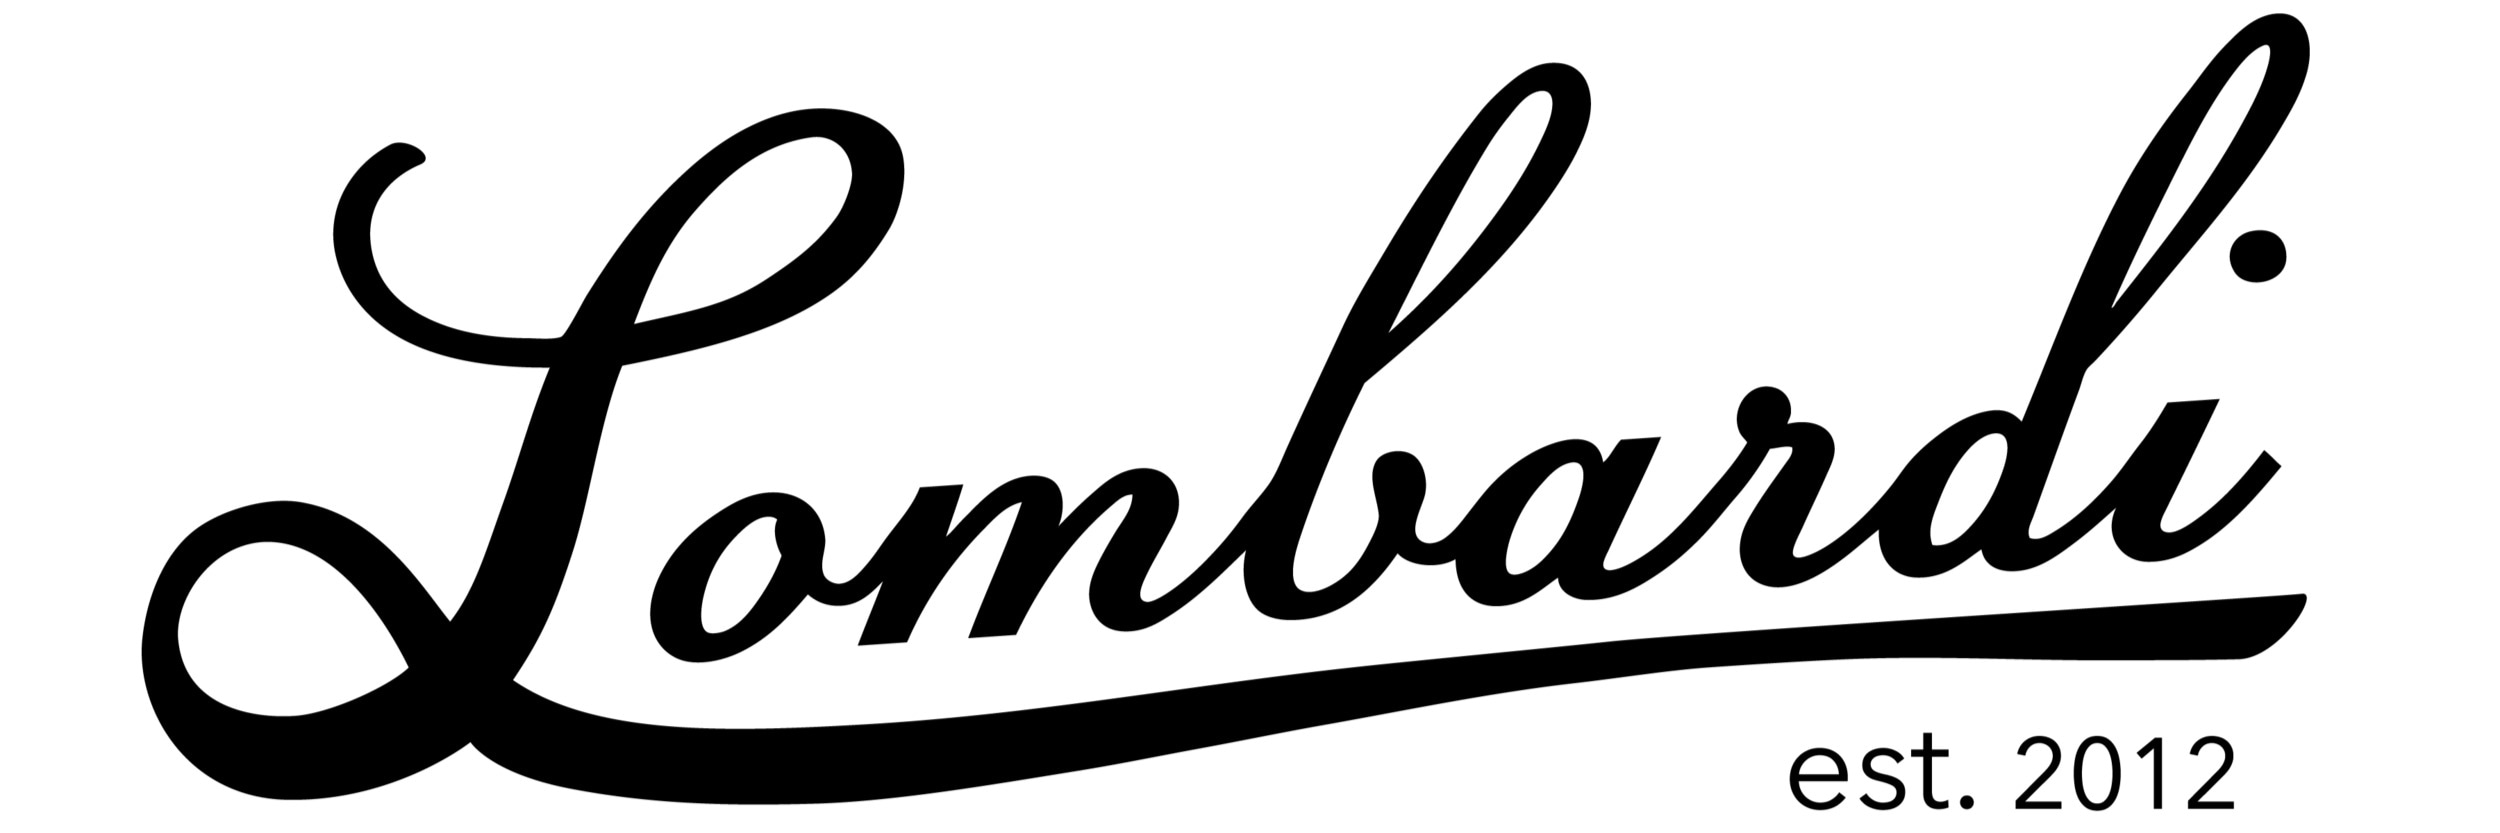 Lombardi Leather promo codes